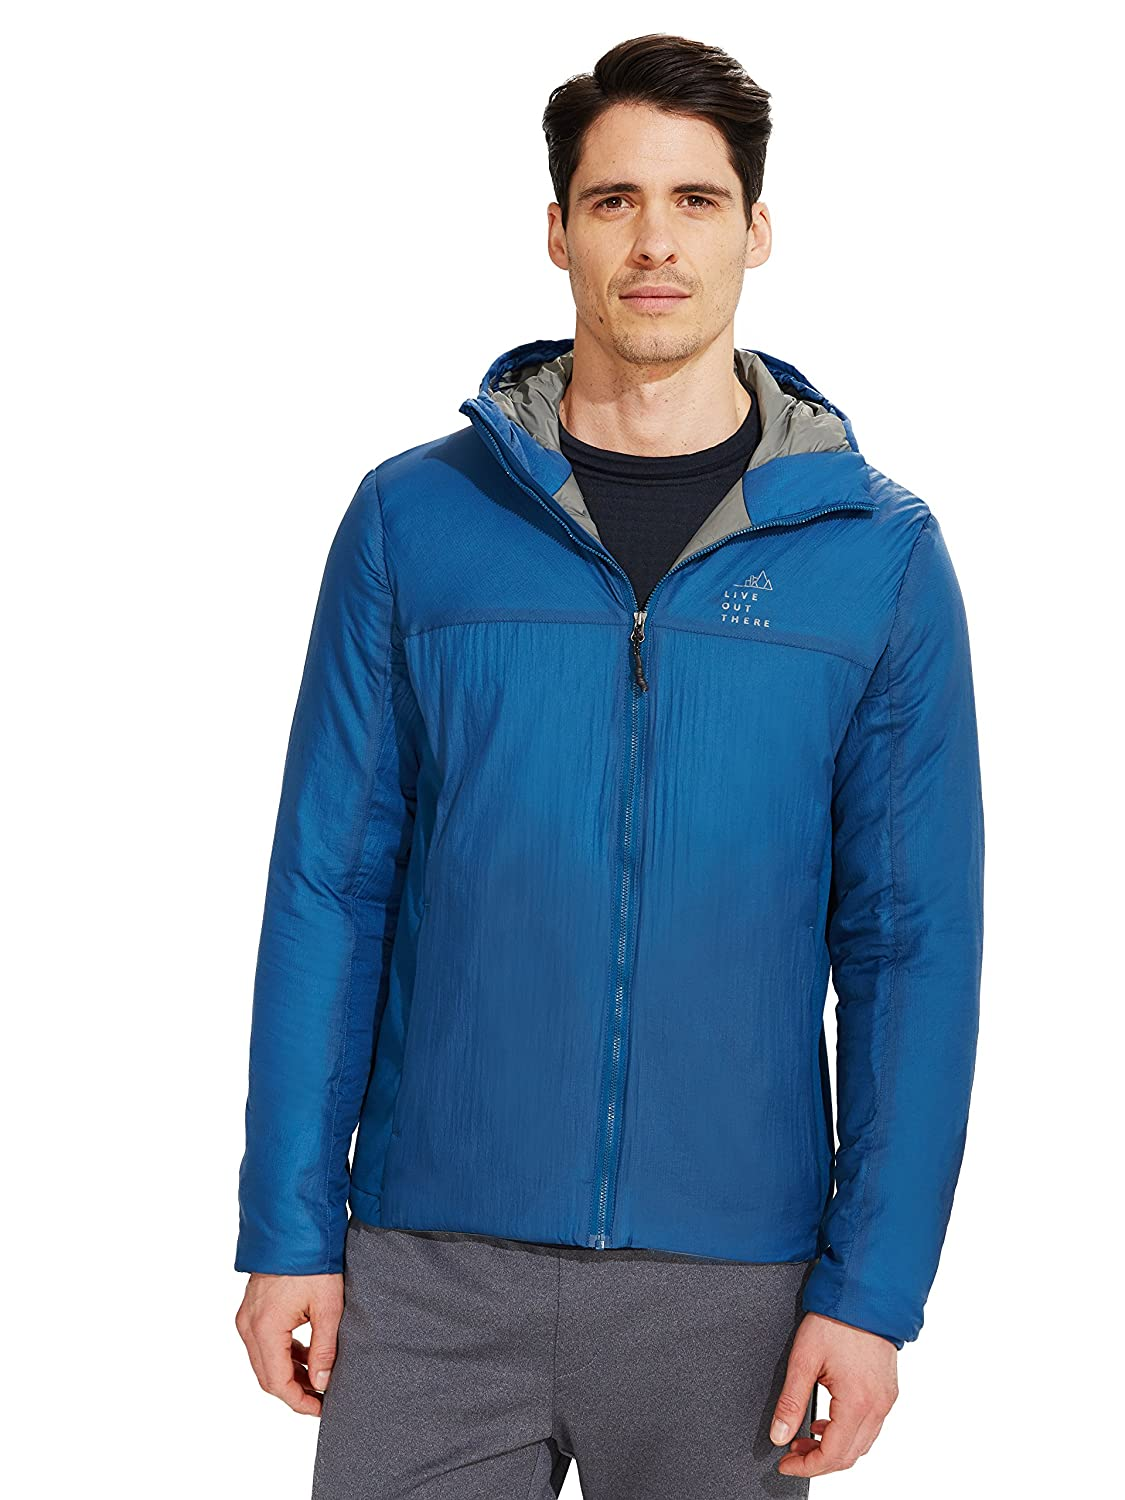 Live Out There OUTERWEAR B076TMTR49  Poiseden Blue M